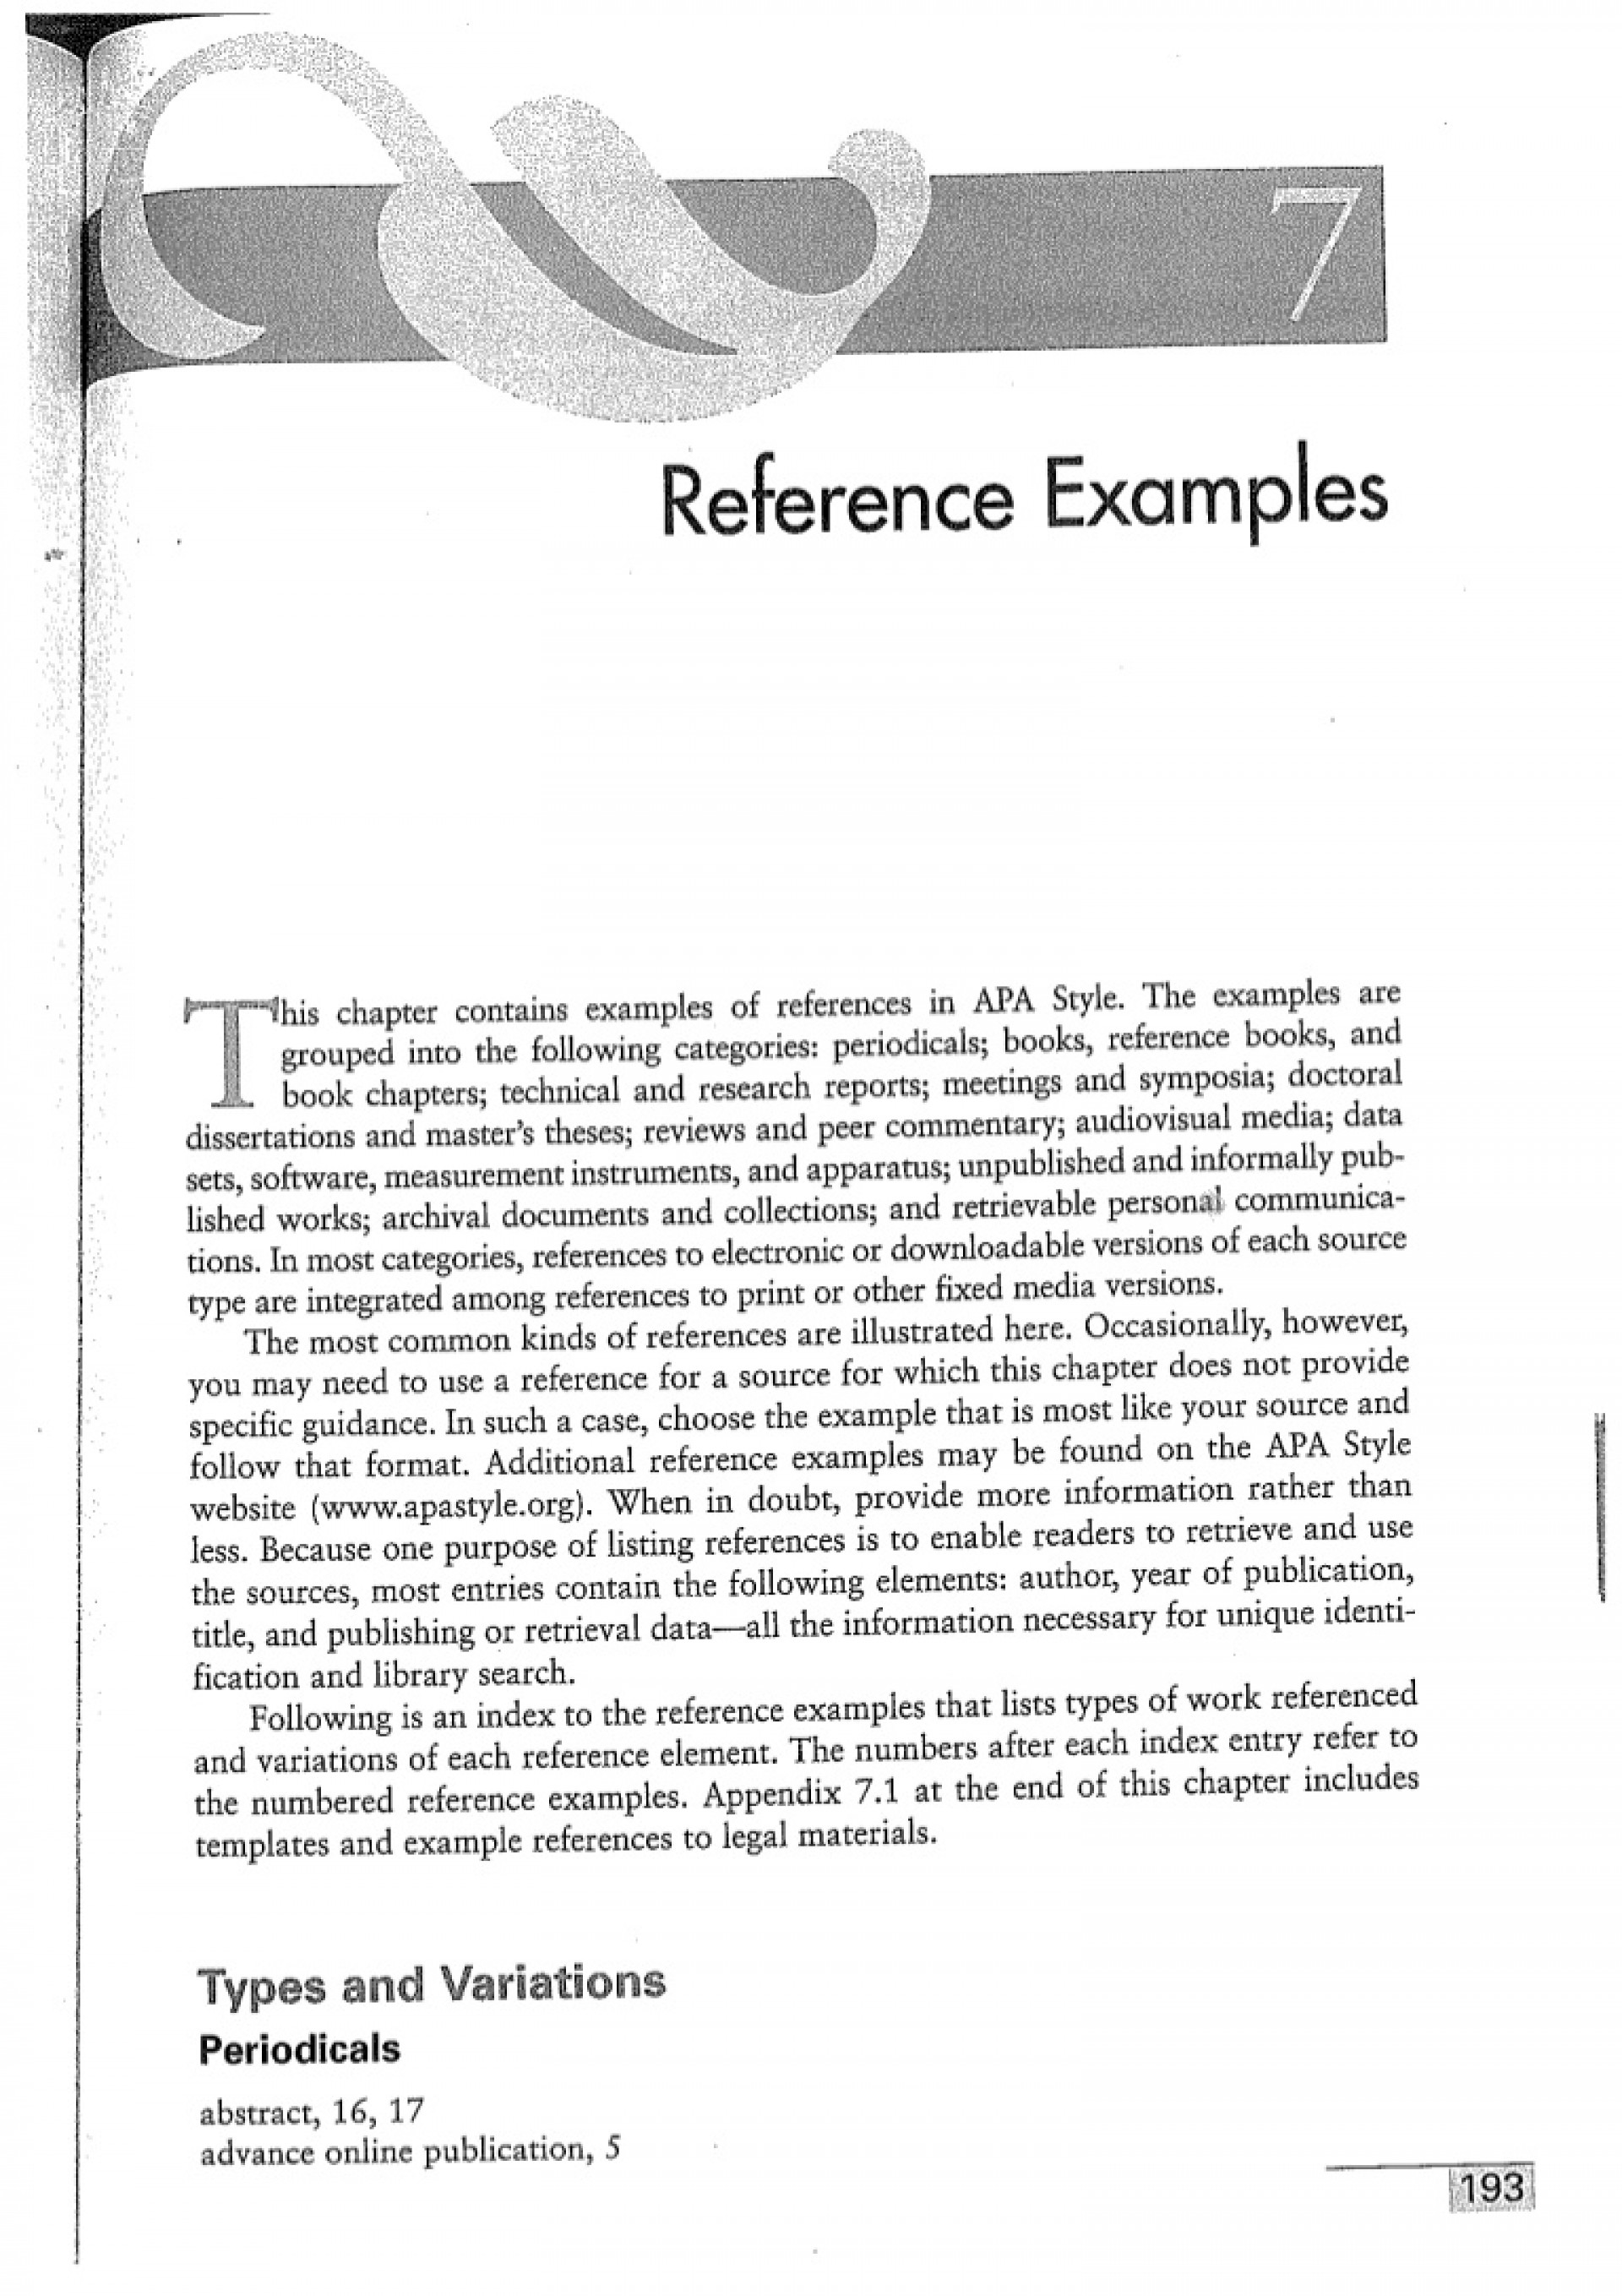 008 How To Write References In Research Paper Slideshare 1apareference Examples Lva1 App6892 Thumbnail Excellent 1920